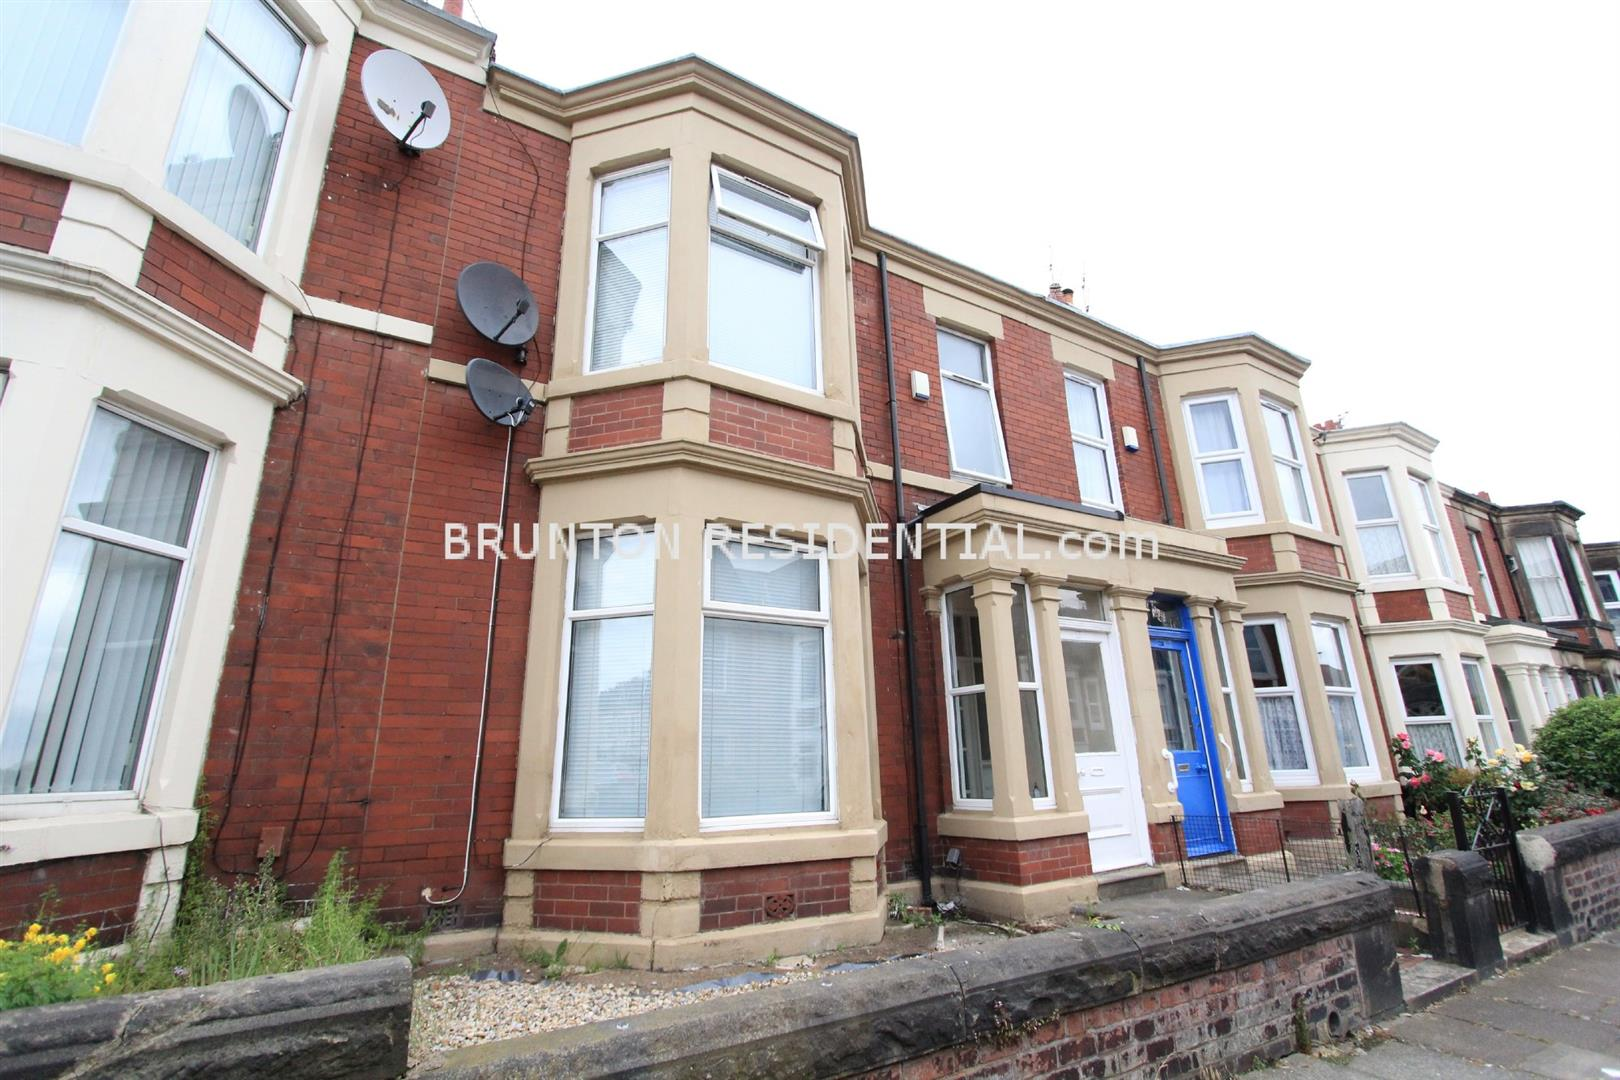 5 bed terraced house to rent in Newcastle Upon Tyne, NE6 5JY 10